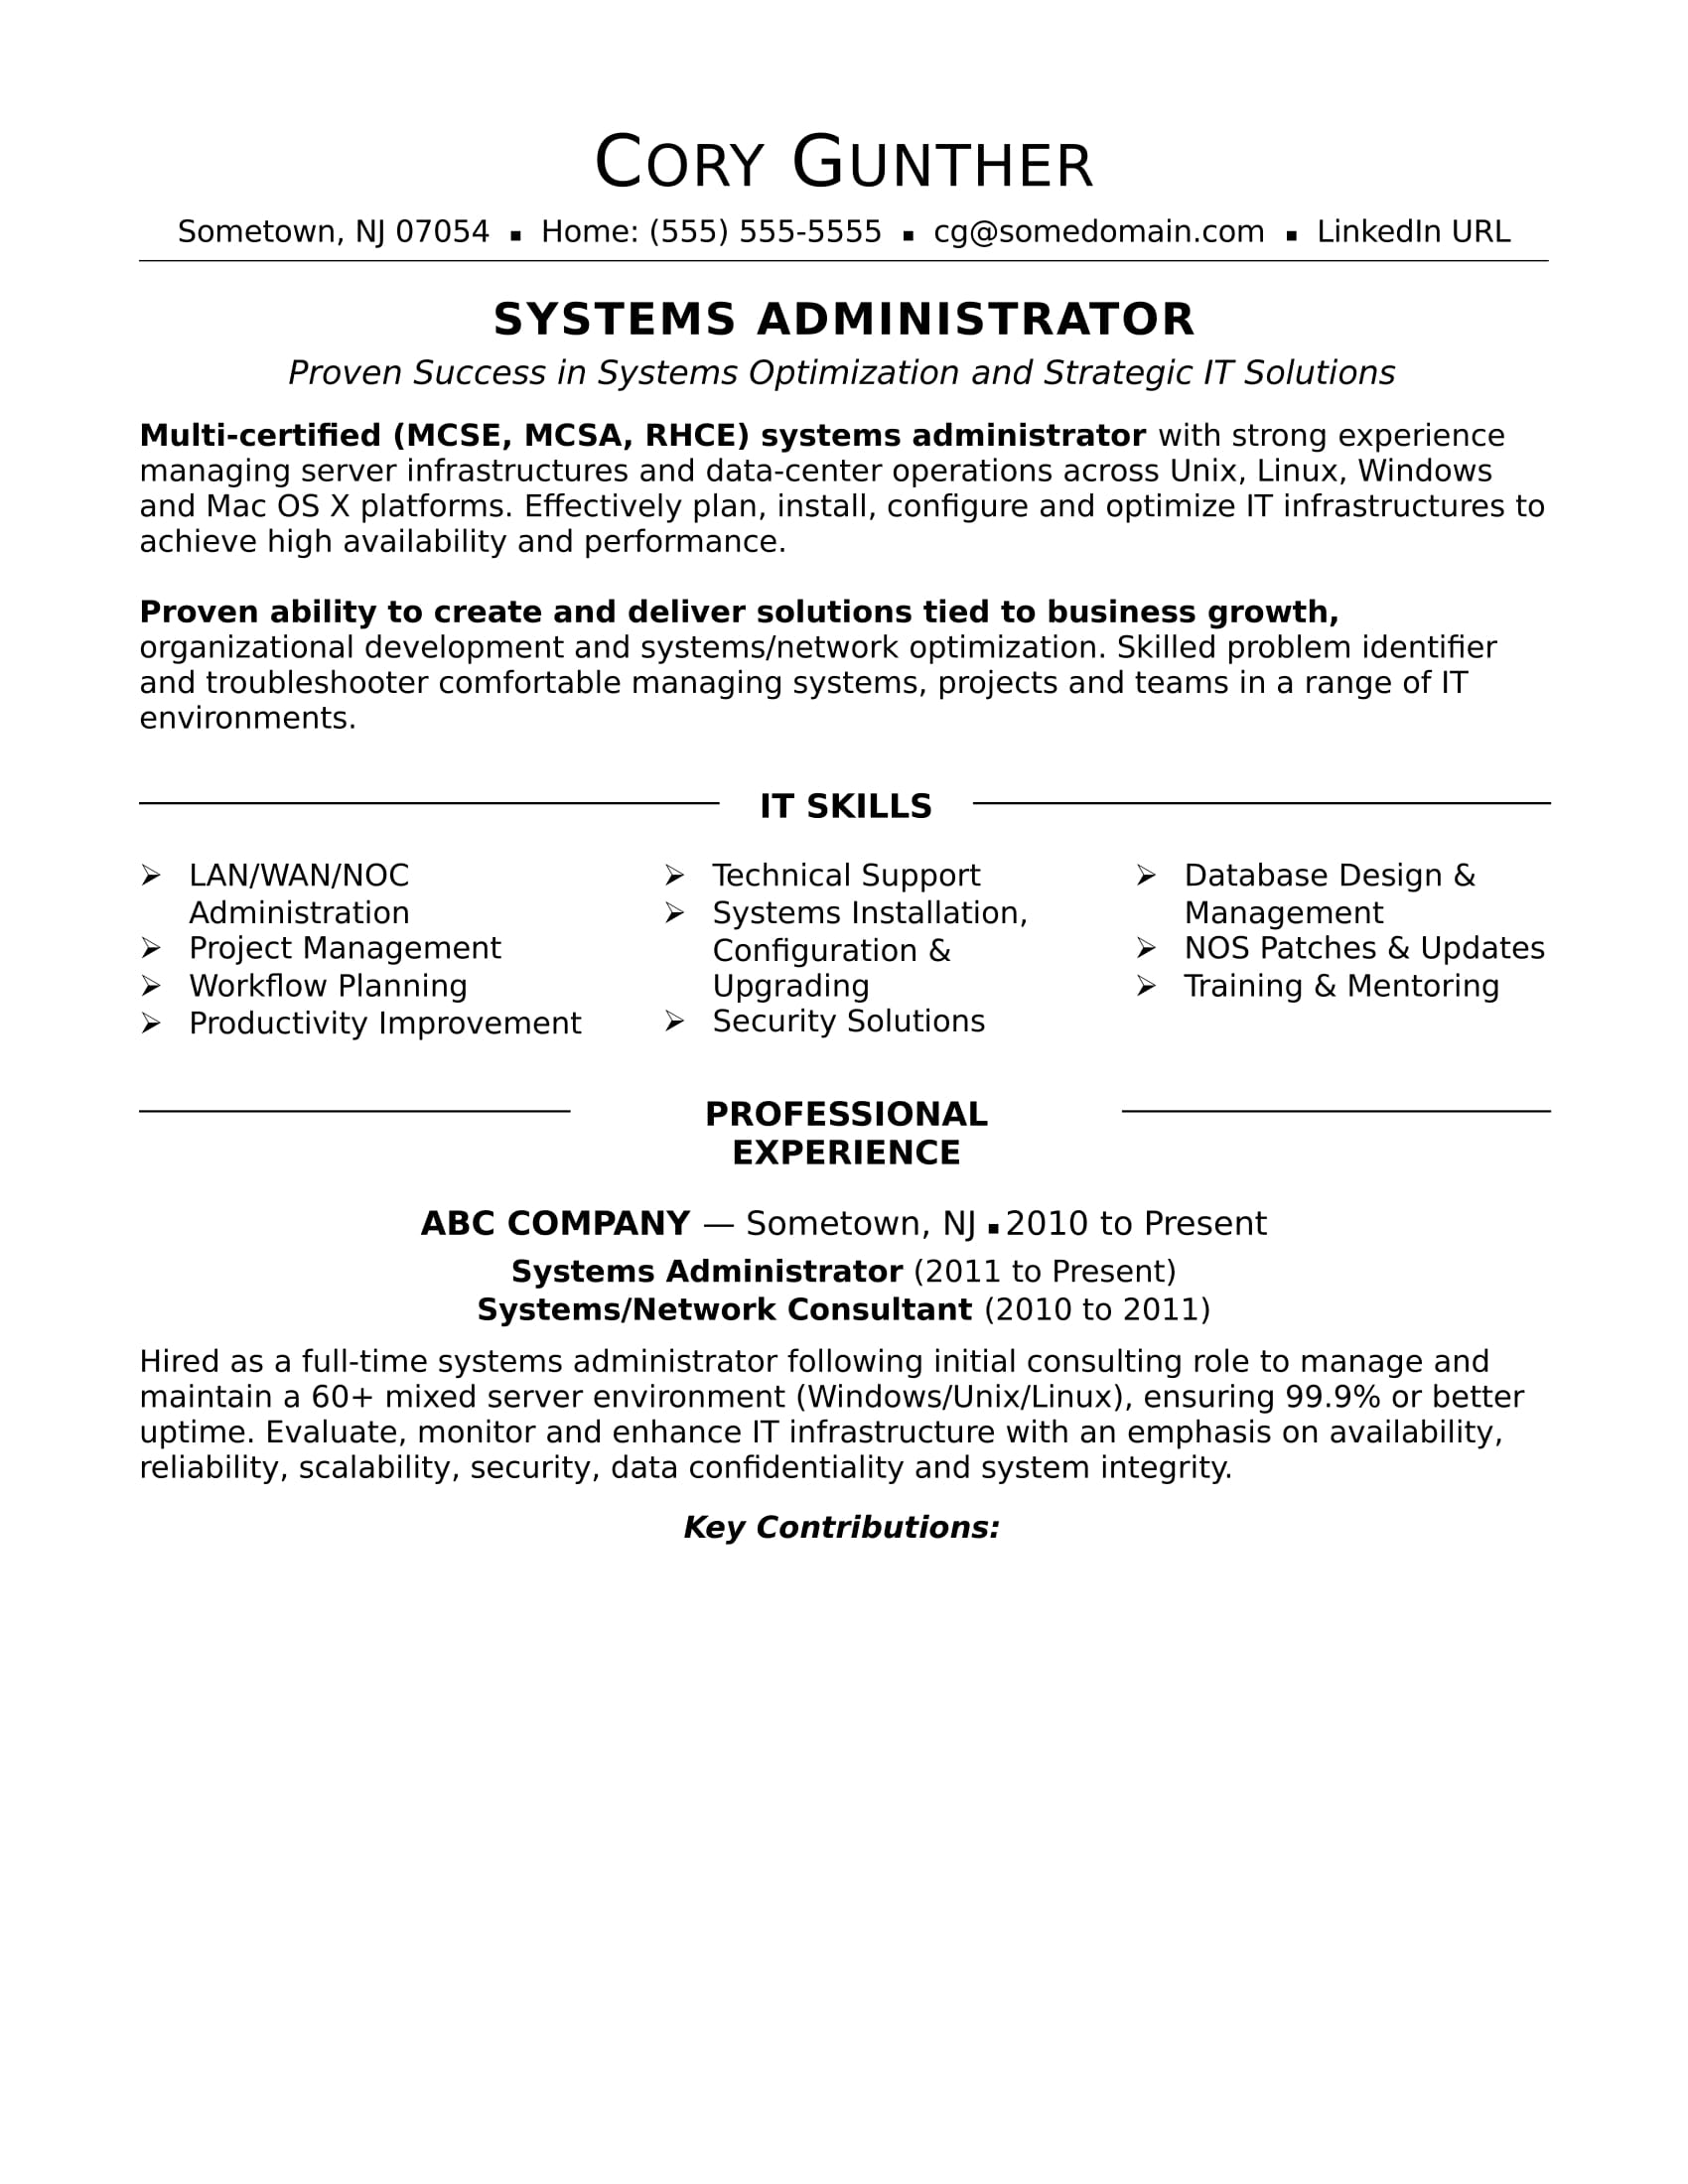 sample resume for an experienced systems administrator monster system free executive Resume System Administrator Resume